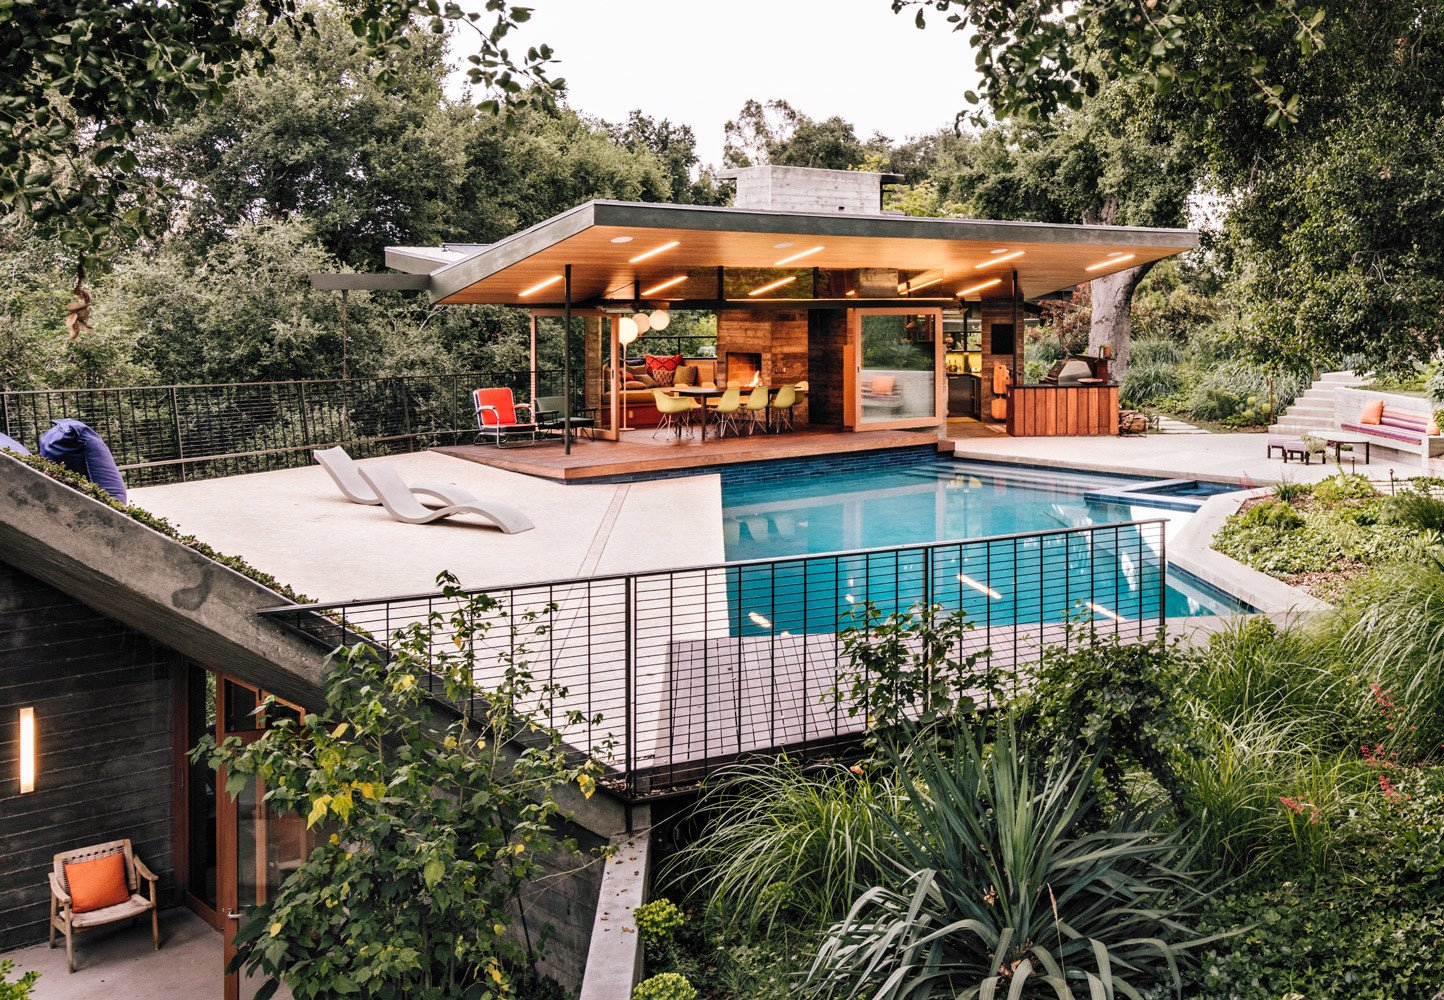 Outdoor, Back Yard, Side Yard, Front Yard, Trees, Grass, Hardscapes, Walkways, Swimming Pools, Tubs, Shower, Rooftop, Concrete Patio, Porch, Deck, Metal Fences, Wall, and Hanging Lighting Delighted with the result, they requested additional structures, including a pool house with a dining area that opens to the outdoors. Rising from the edge of the pool deck, a planted overhang shelters a gym and sauna below.  47+ Midcentury Modern Homes Across America by Luke Hopping from Creative Revival of a Modernist Gem